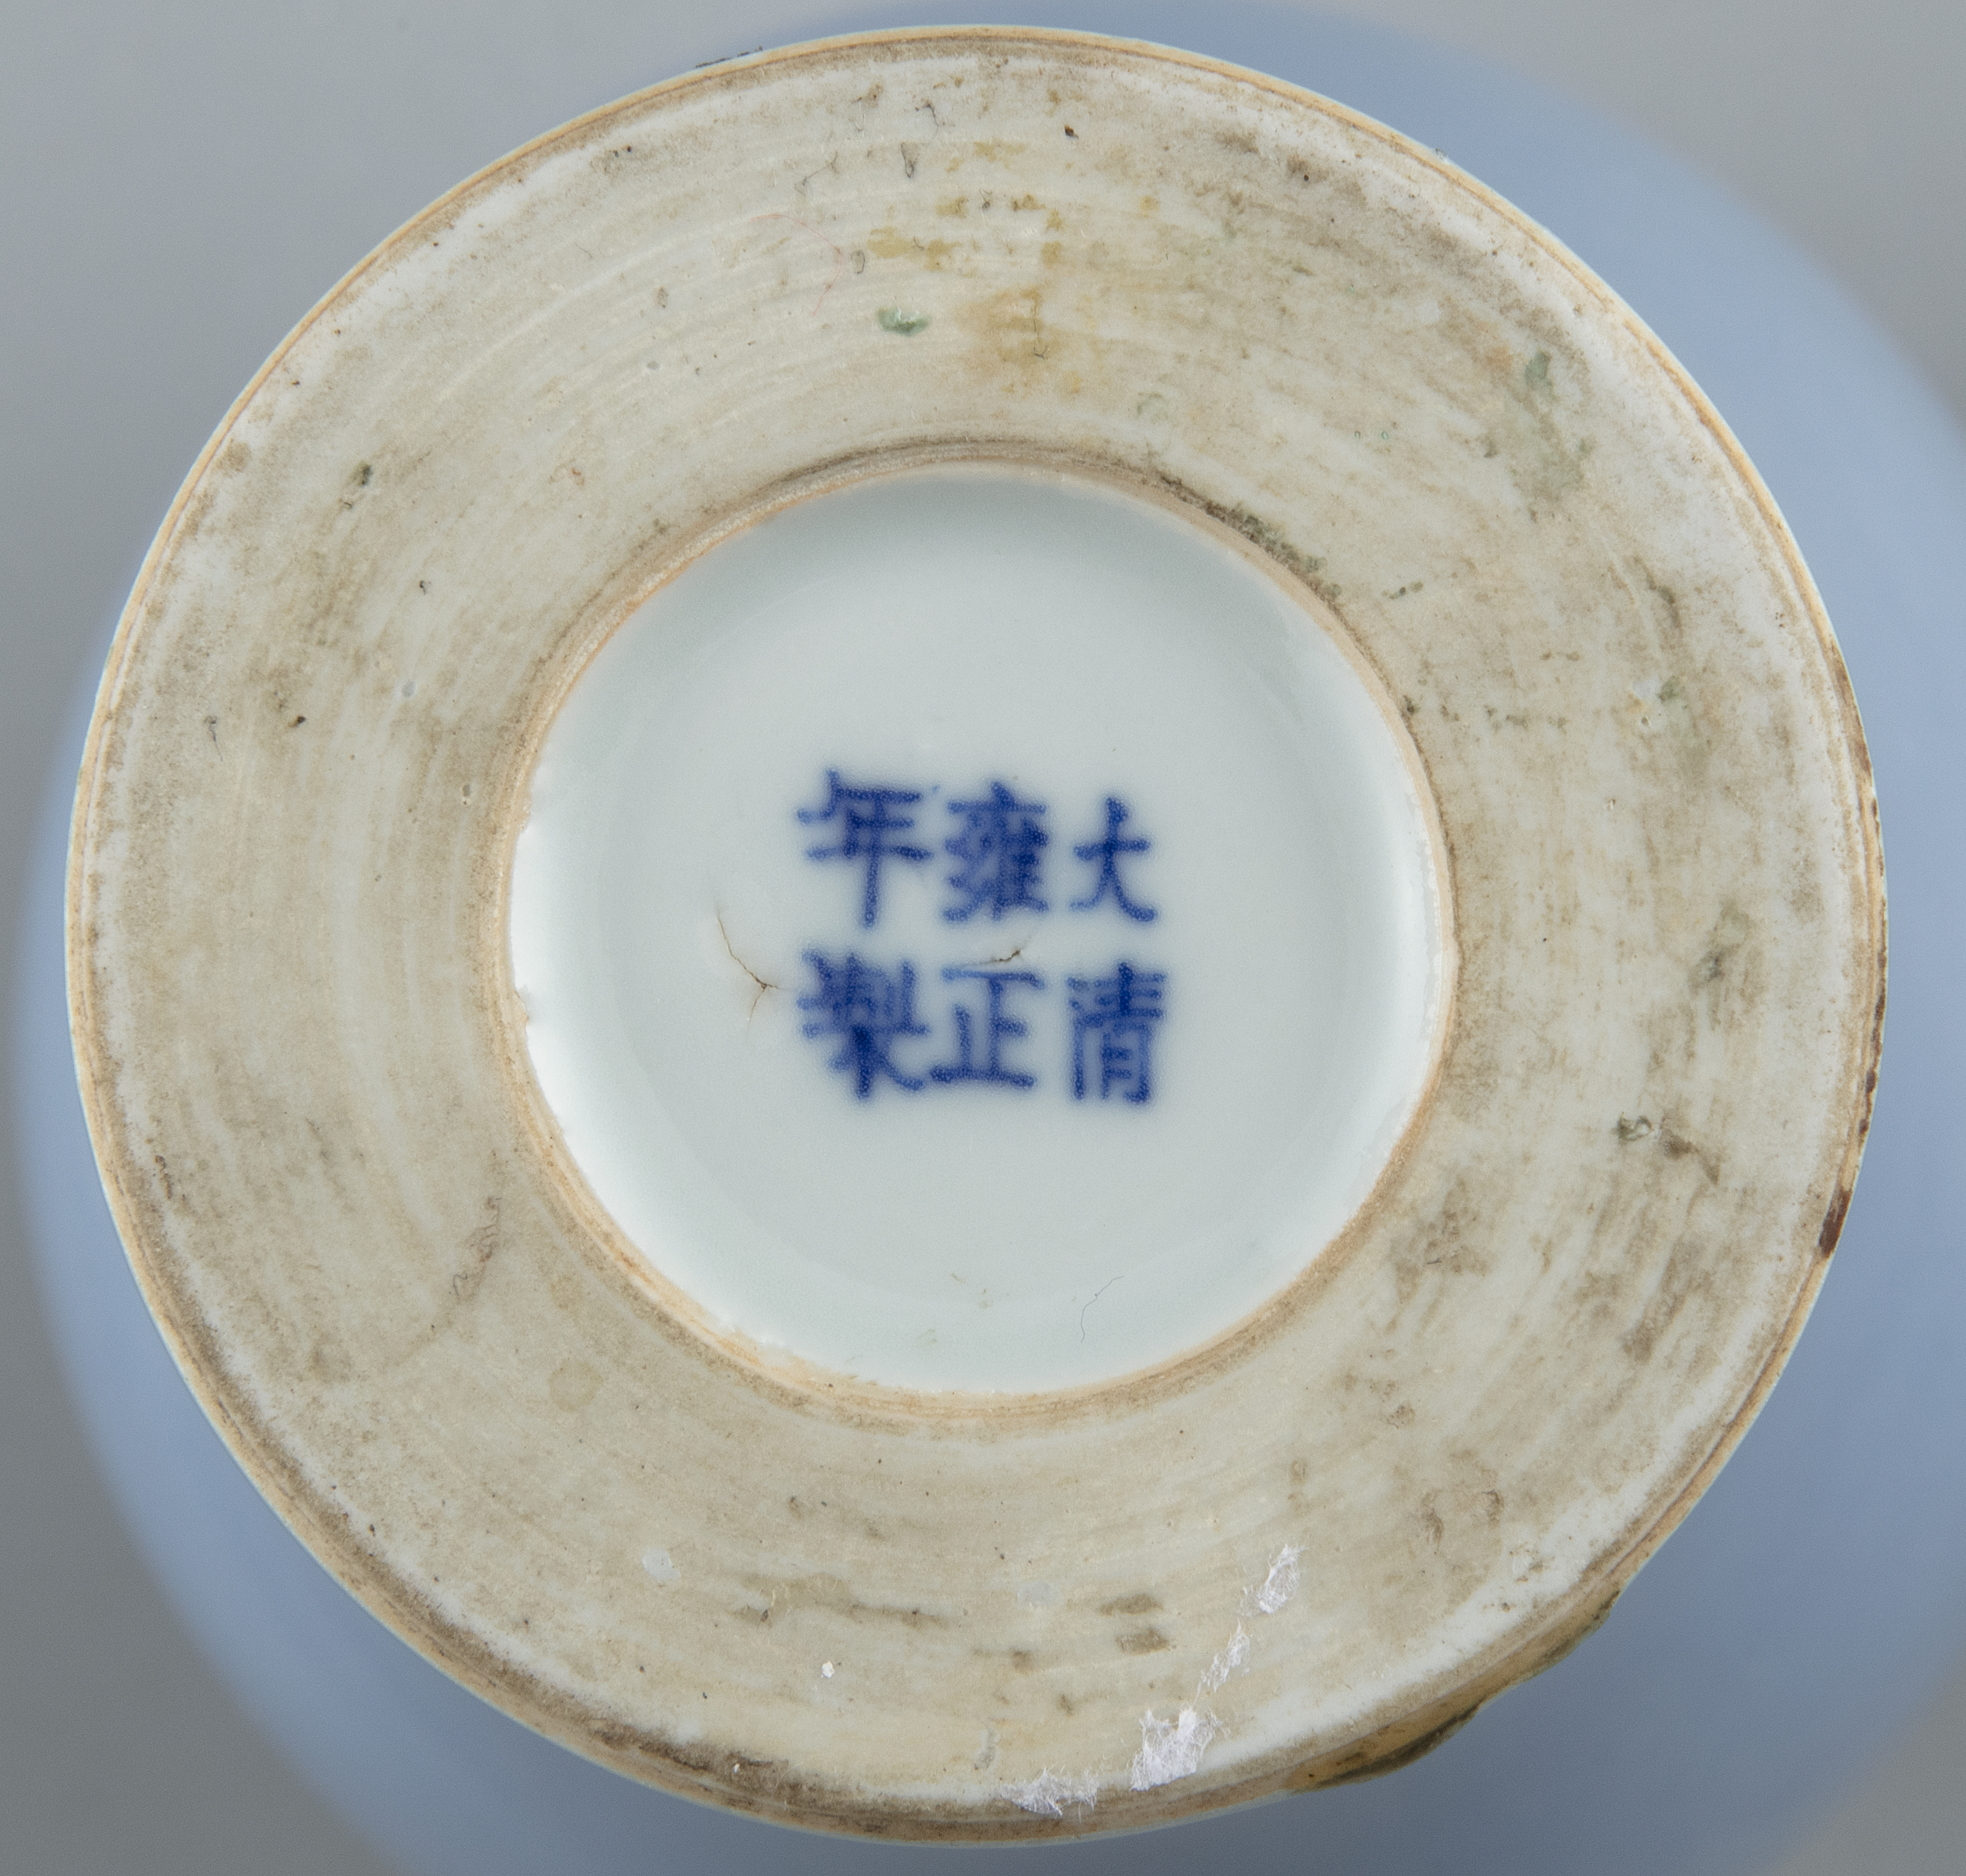 A CLAIR DE LUNE GLAZED PORCELAIN MEIPING VASE China, Qing Dynasty The below inscribed with the - Image 6 of 11